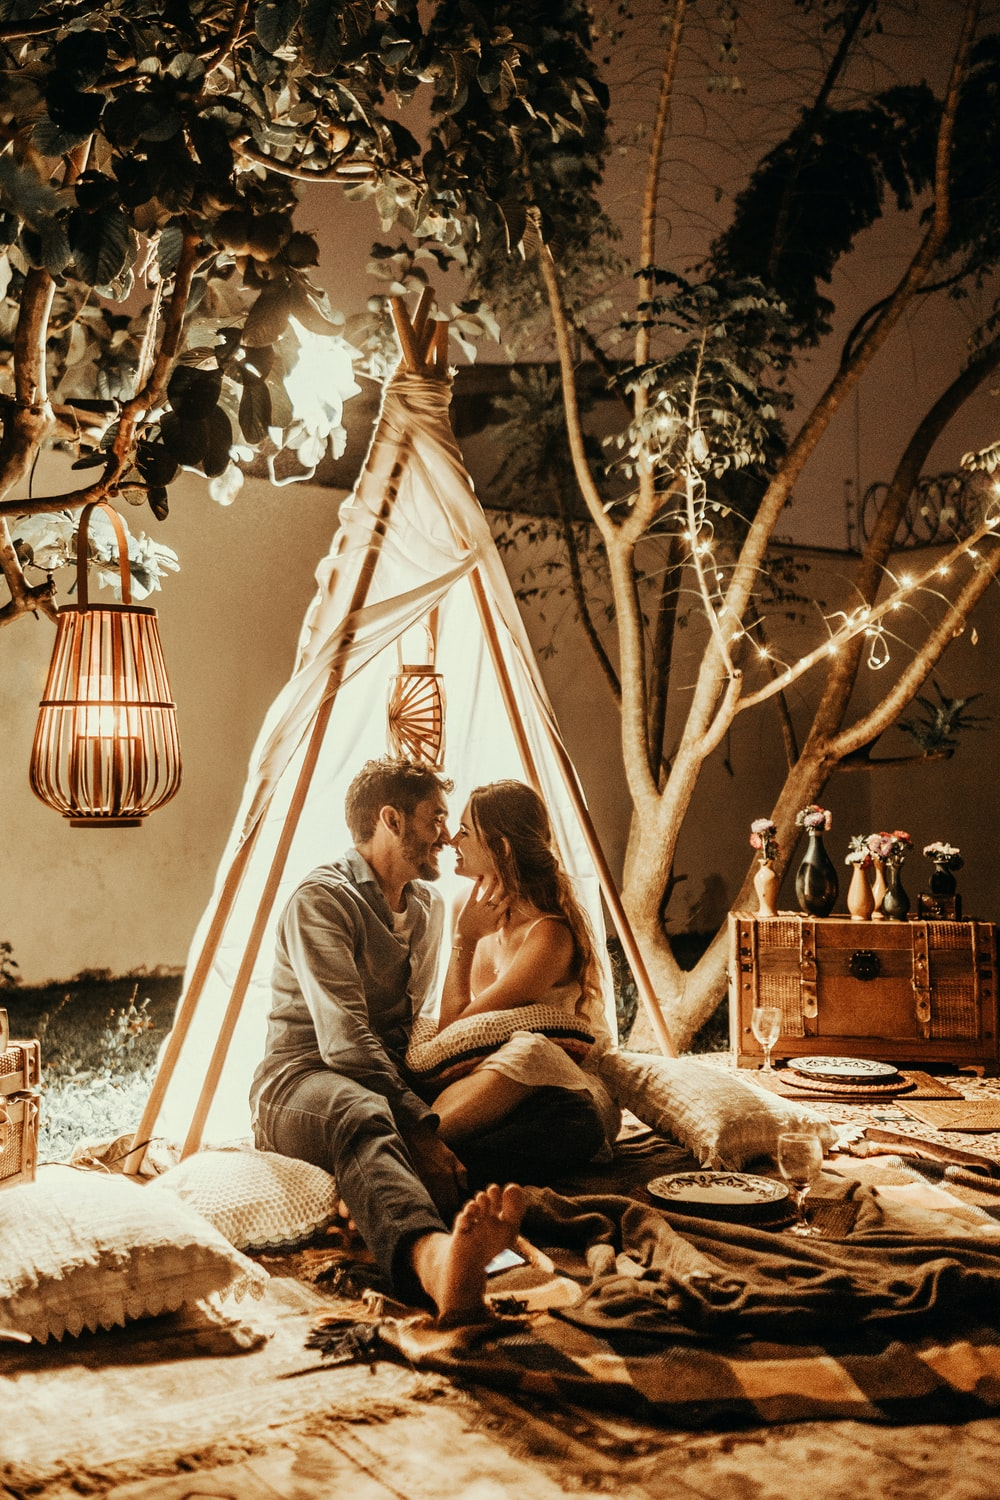 smiling man and woman inside tipi tent